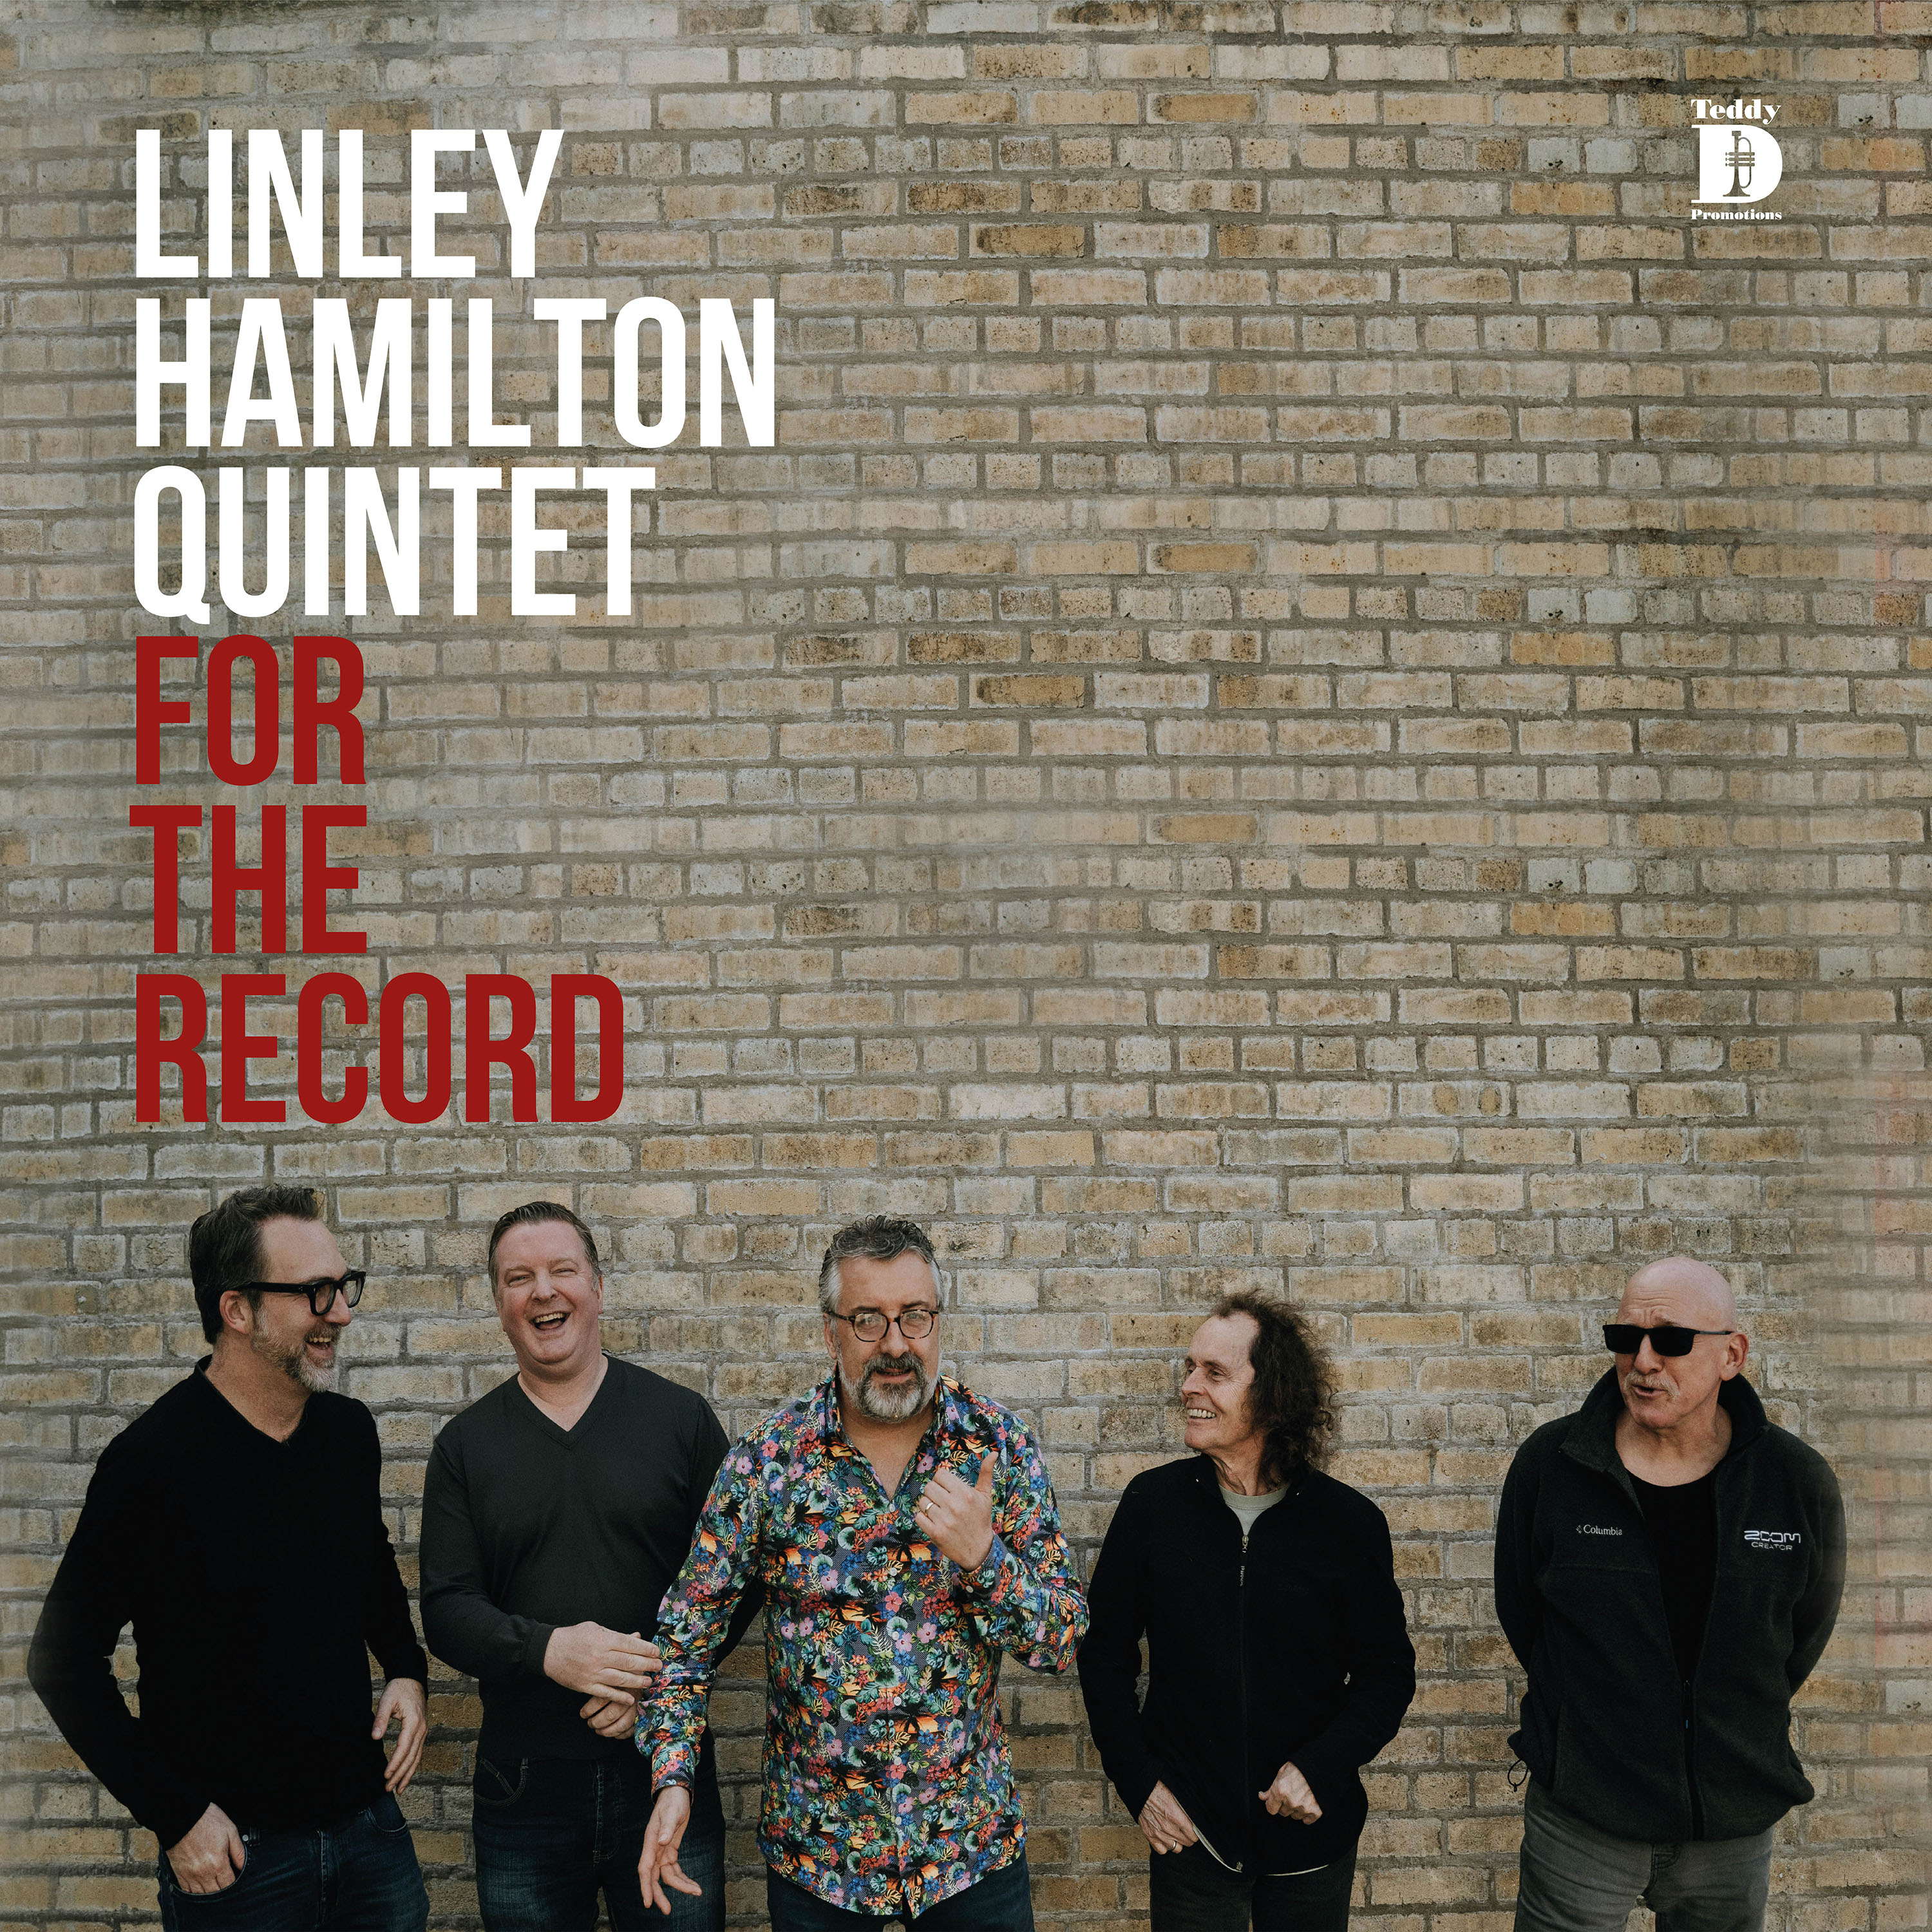 Dr. Linley Hamilton - For The Record CD Launch